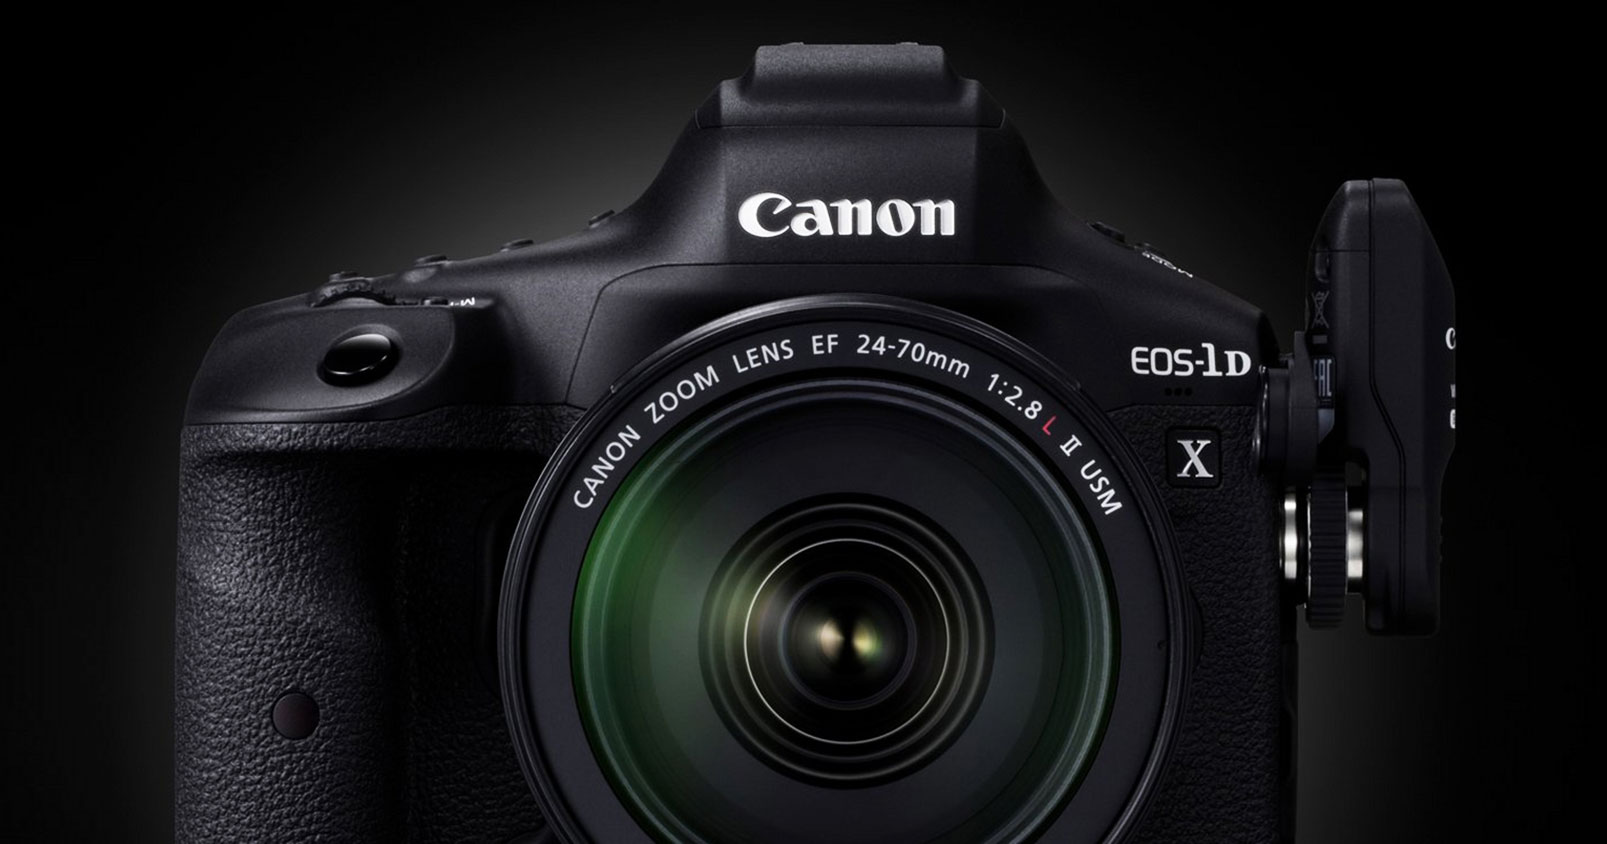 NEWS: Canon Officially Announces the Much-Anticipated EOS-1D X Mark III